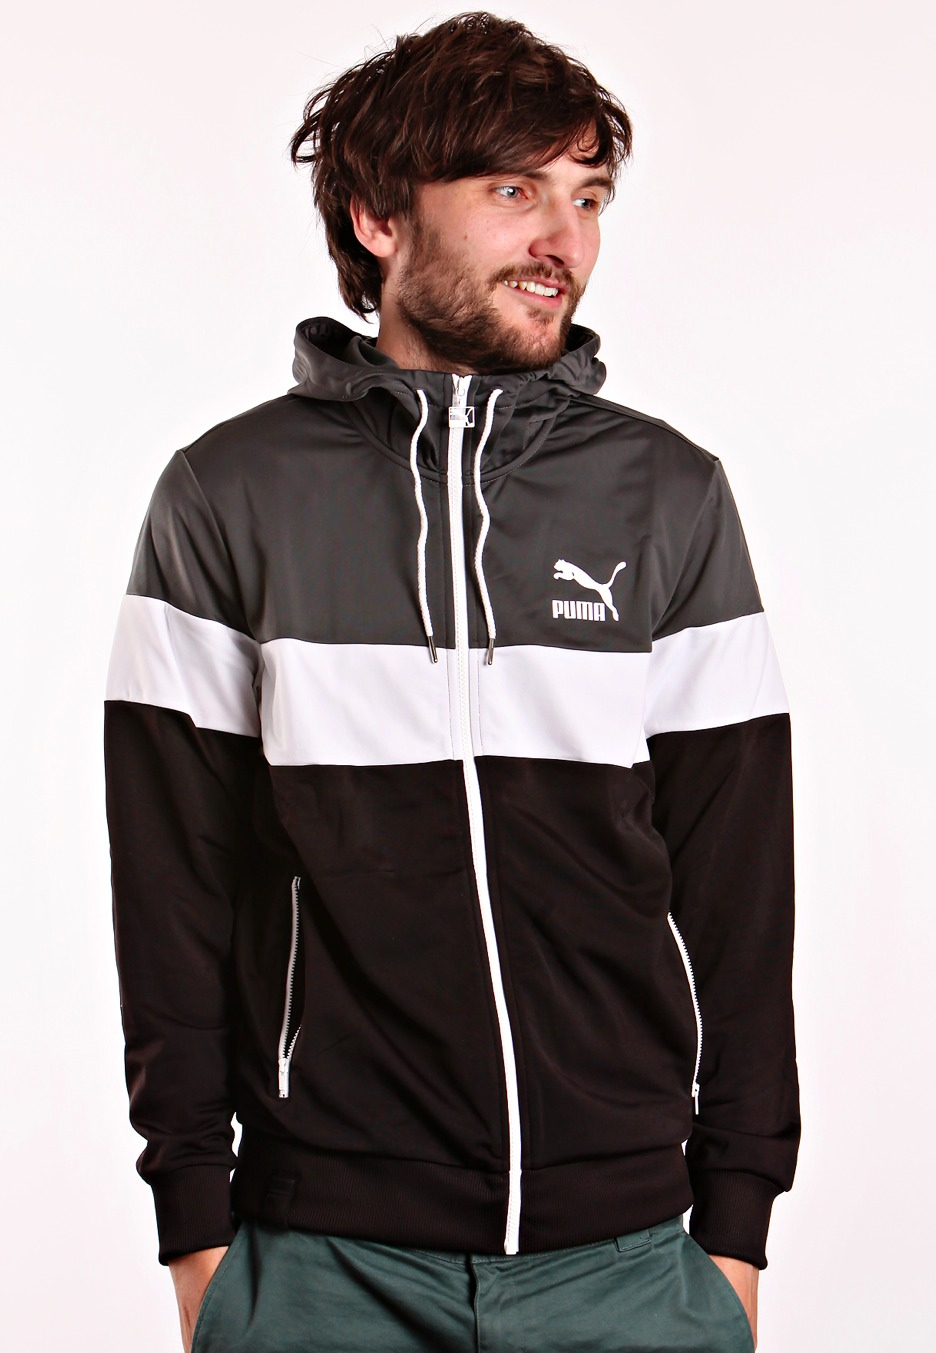 Puma Hooded Jacket Puma Shoes Clothes Amp Accessories